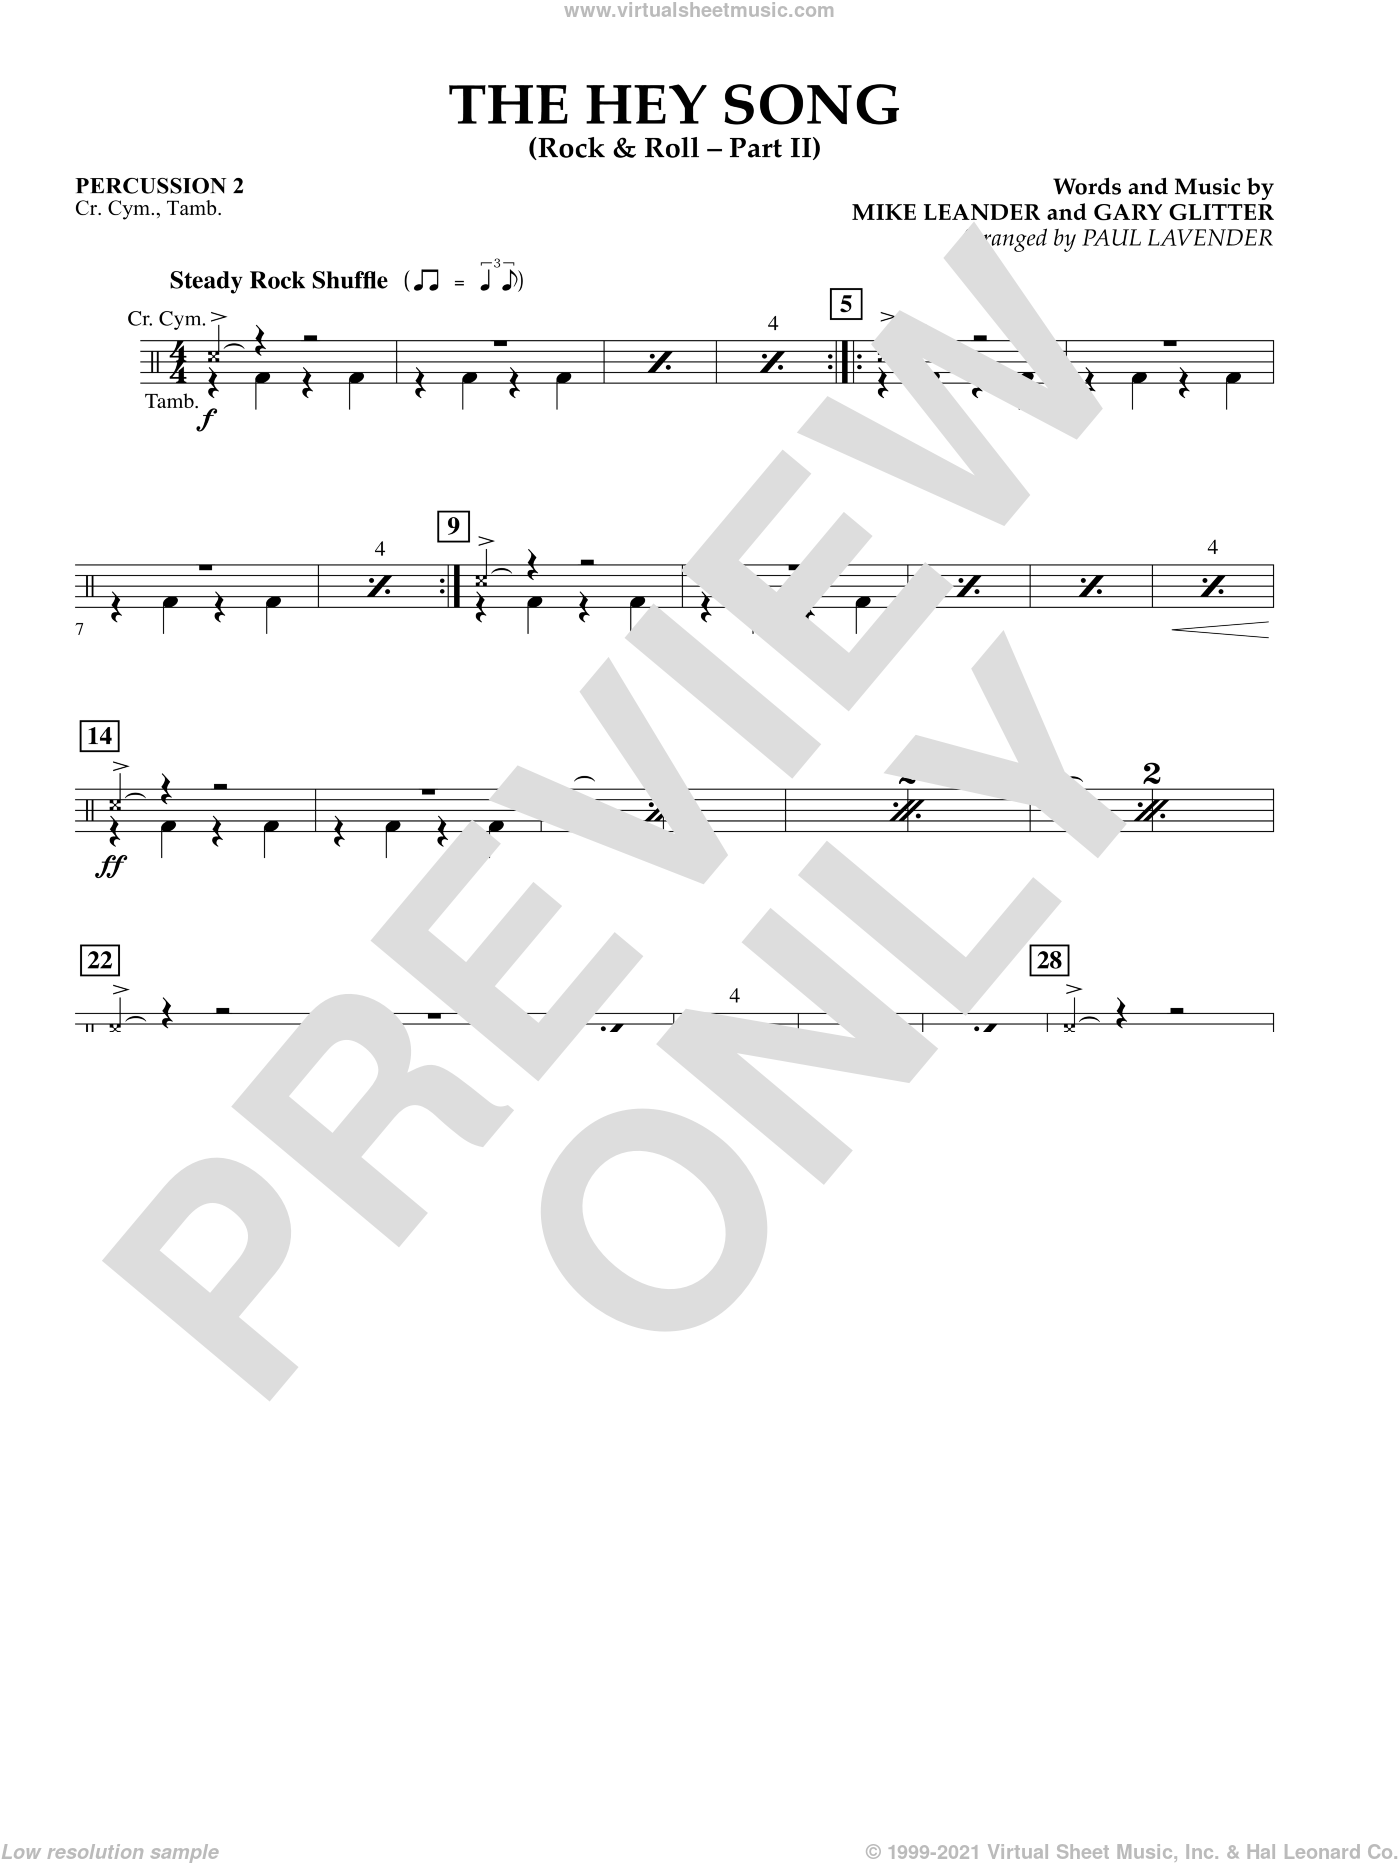 The Hey Song (Rock and Roll Part II) (Flex-Band) sheet music for concert band (percussion 2) by Gary Glitter, Paul Lavender and Mike Leander, intermediate skill level